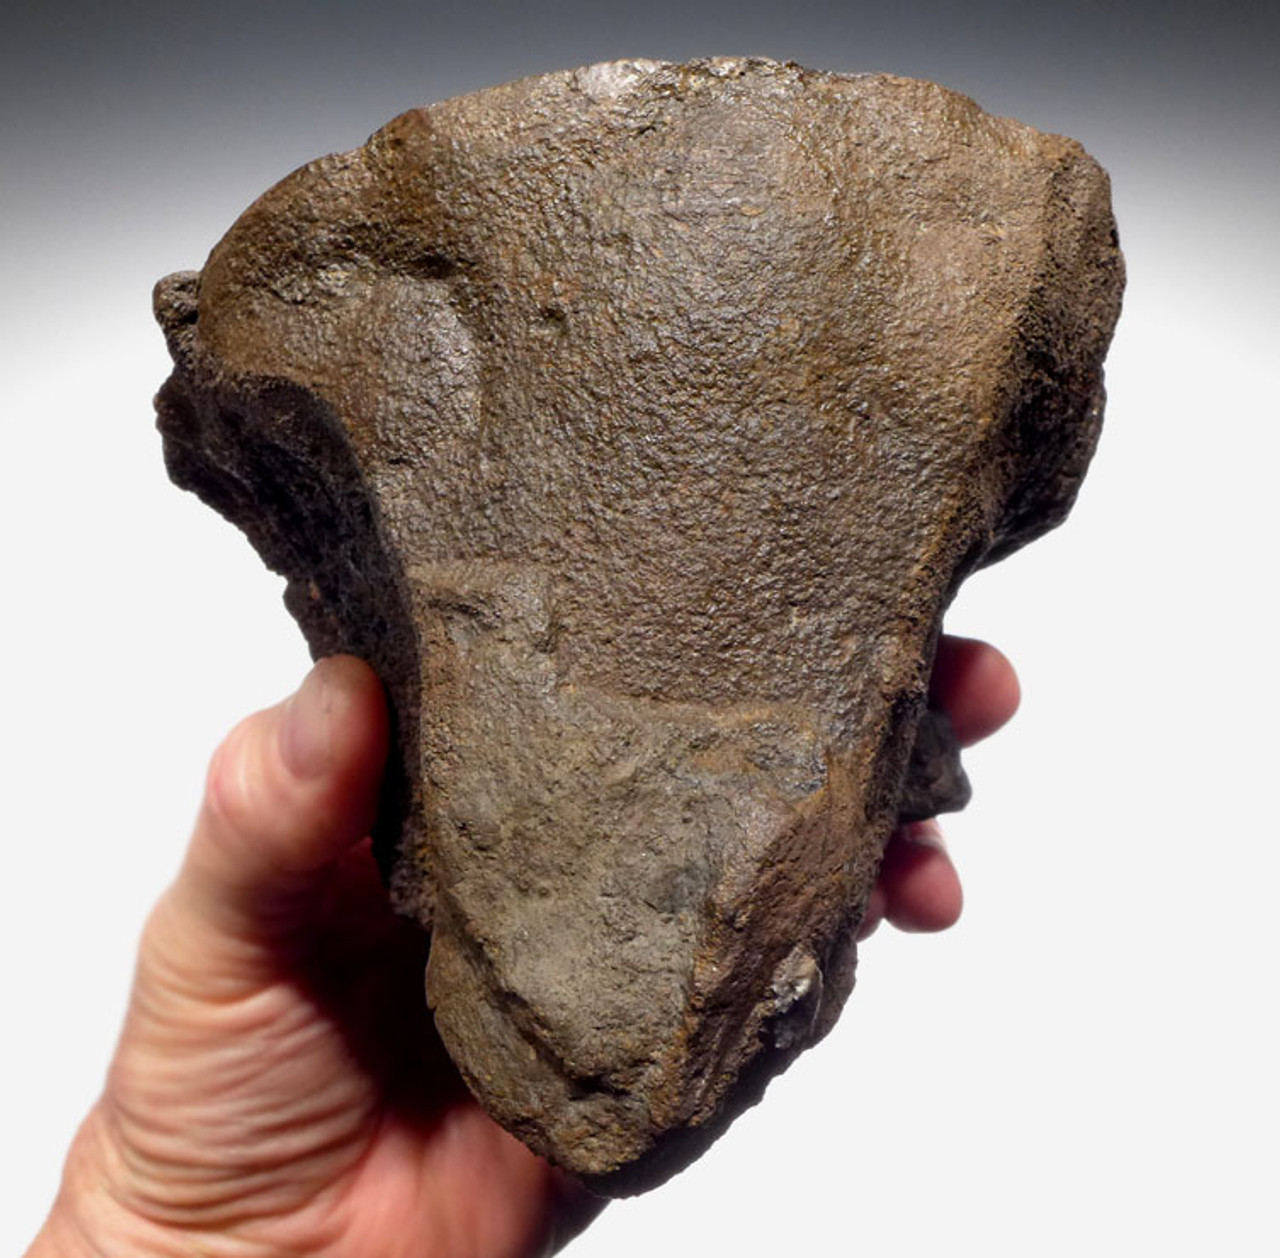 ST015 - EXCEPTIONAL LARGE SLICED AND POLISHED 3D FRESHWATER FOSSIL STROMATOLITE COLONY FROM THE LOWER PERMIAN OF GERMANY